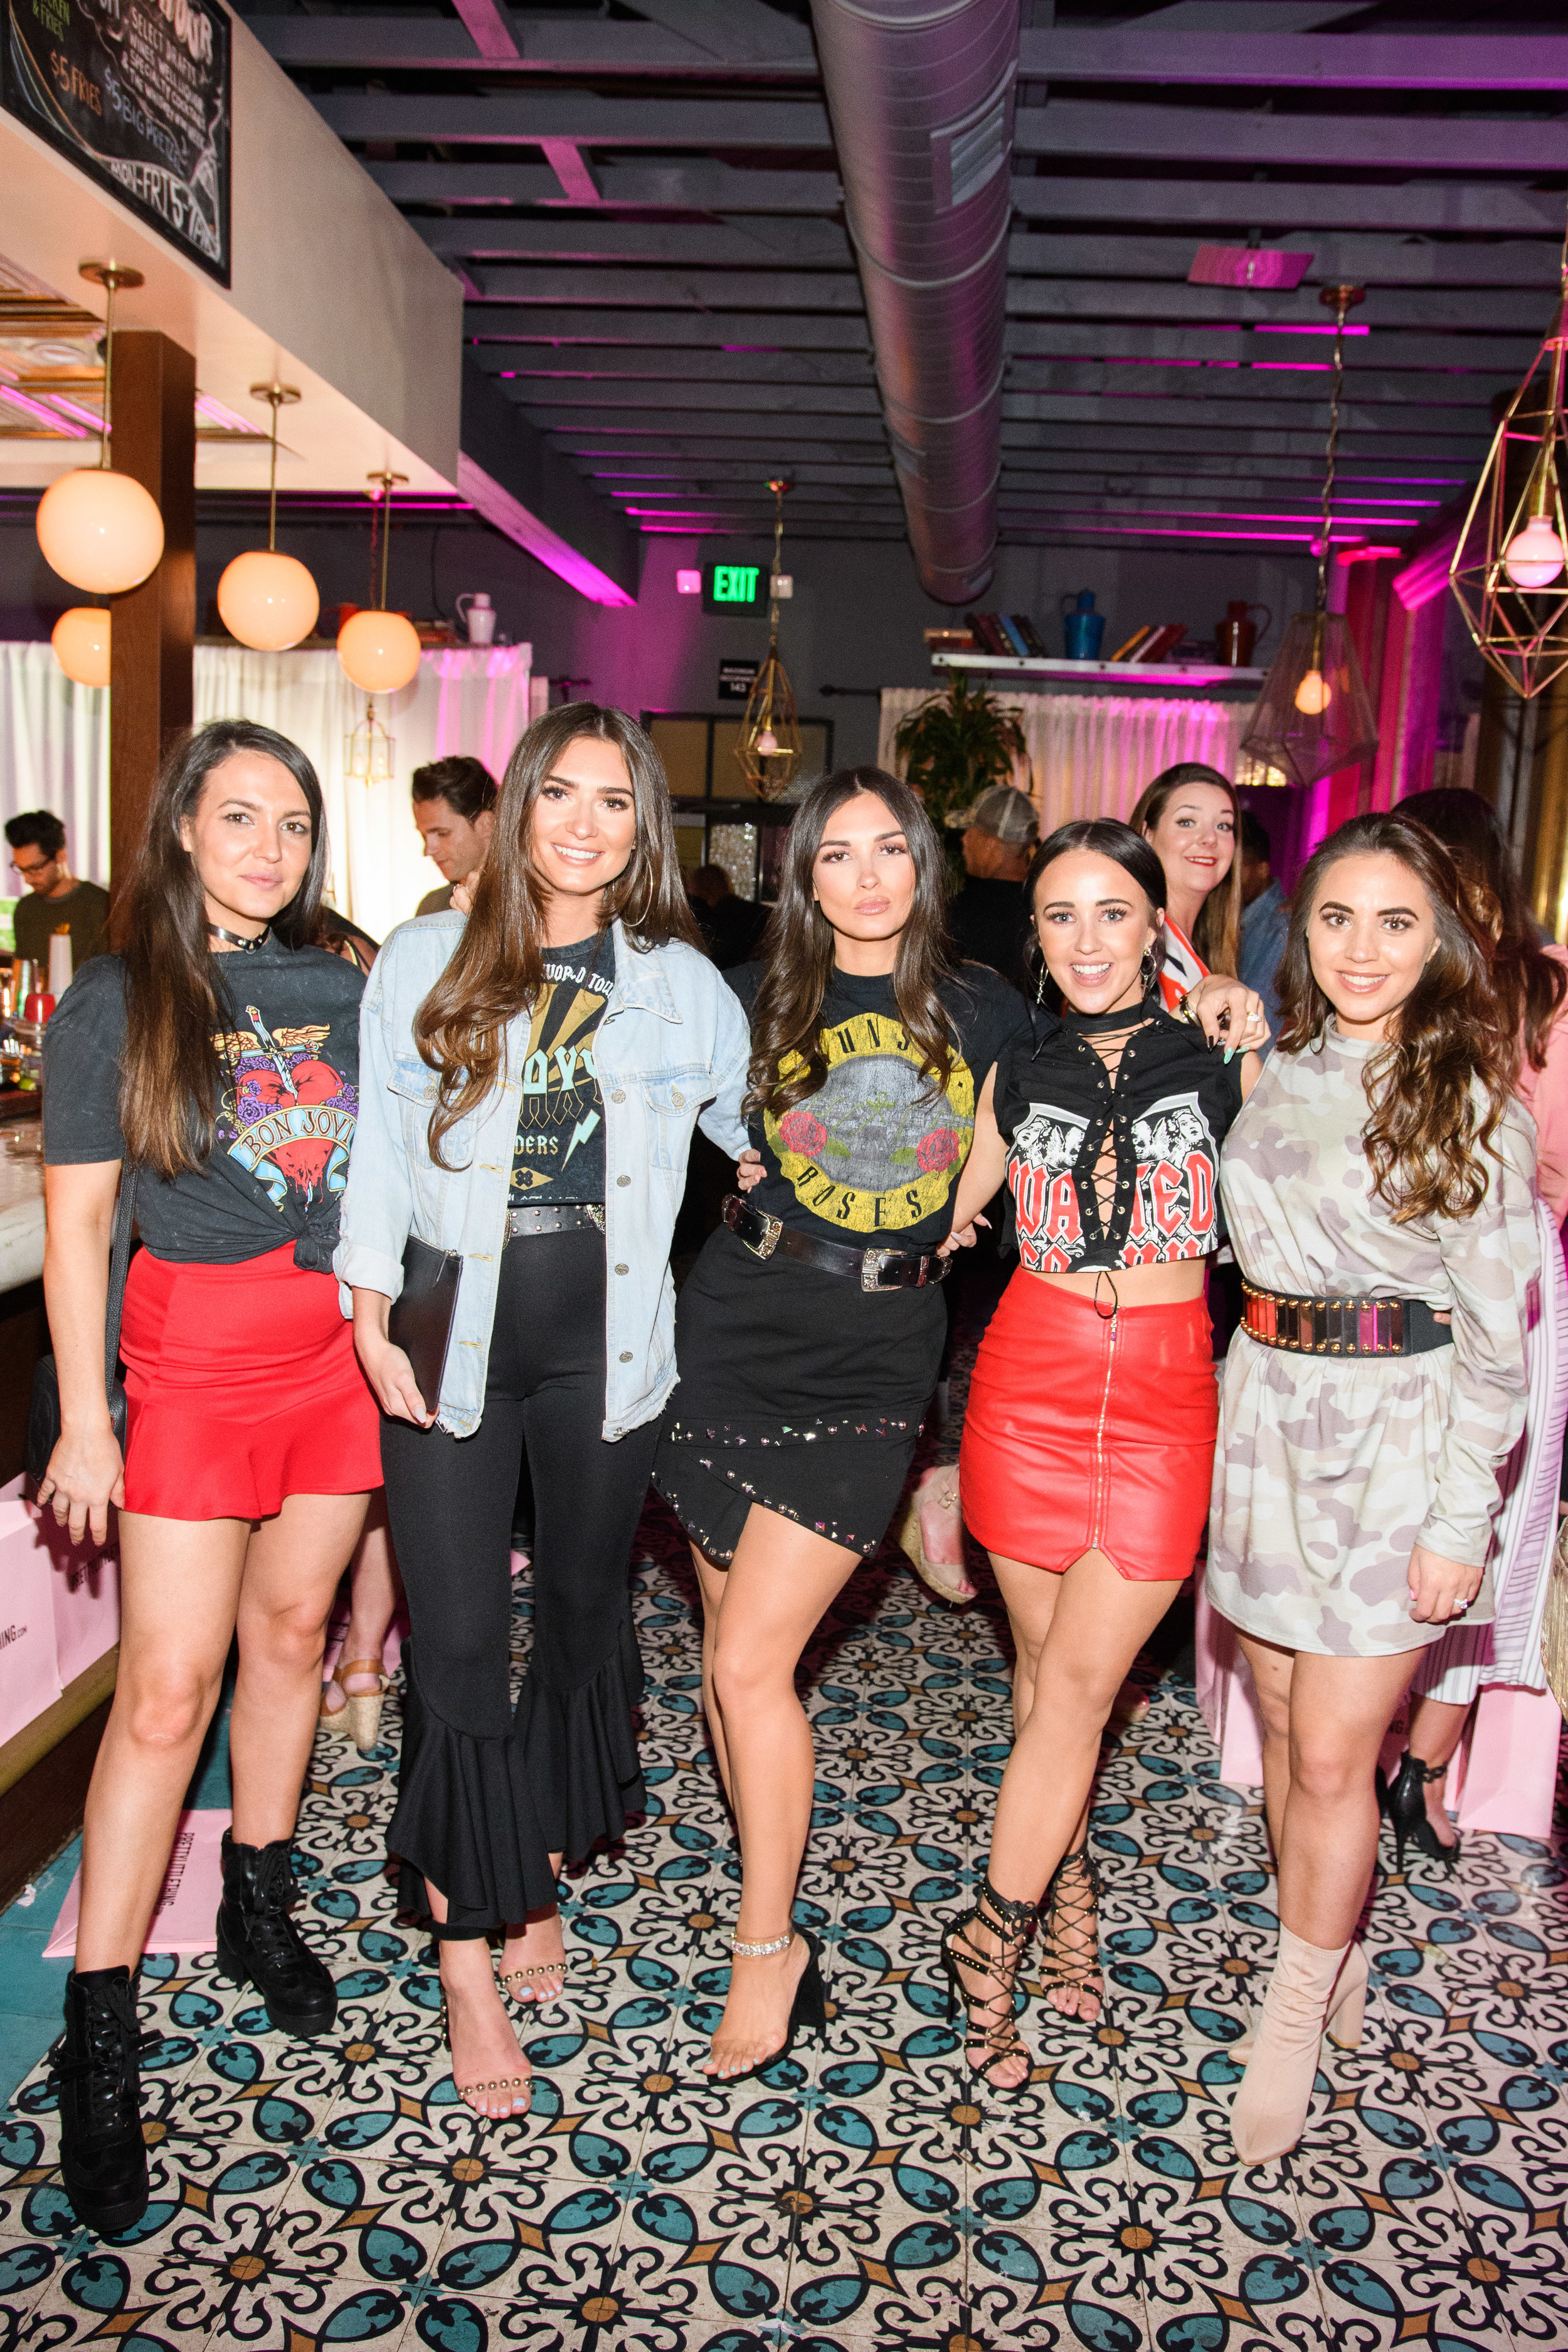 PrettyLittleThing New PLT Shape Collection with Stassie Celebrity Launch Party beauties pose together at the party.jpg